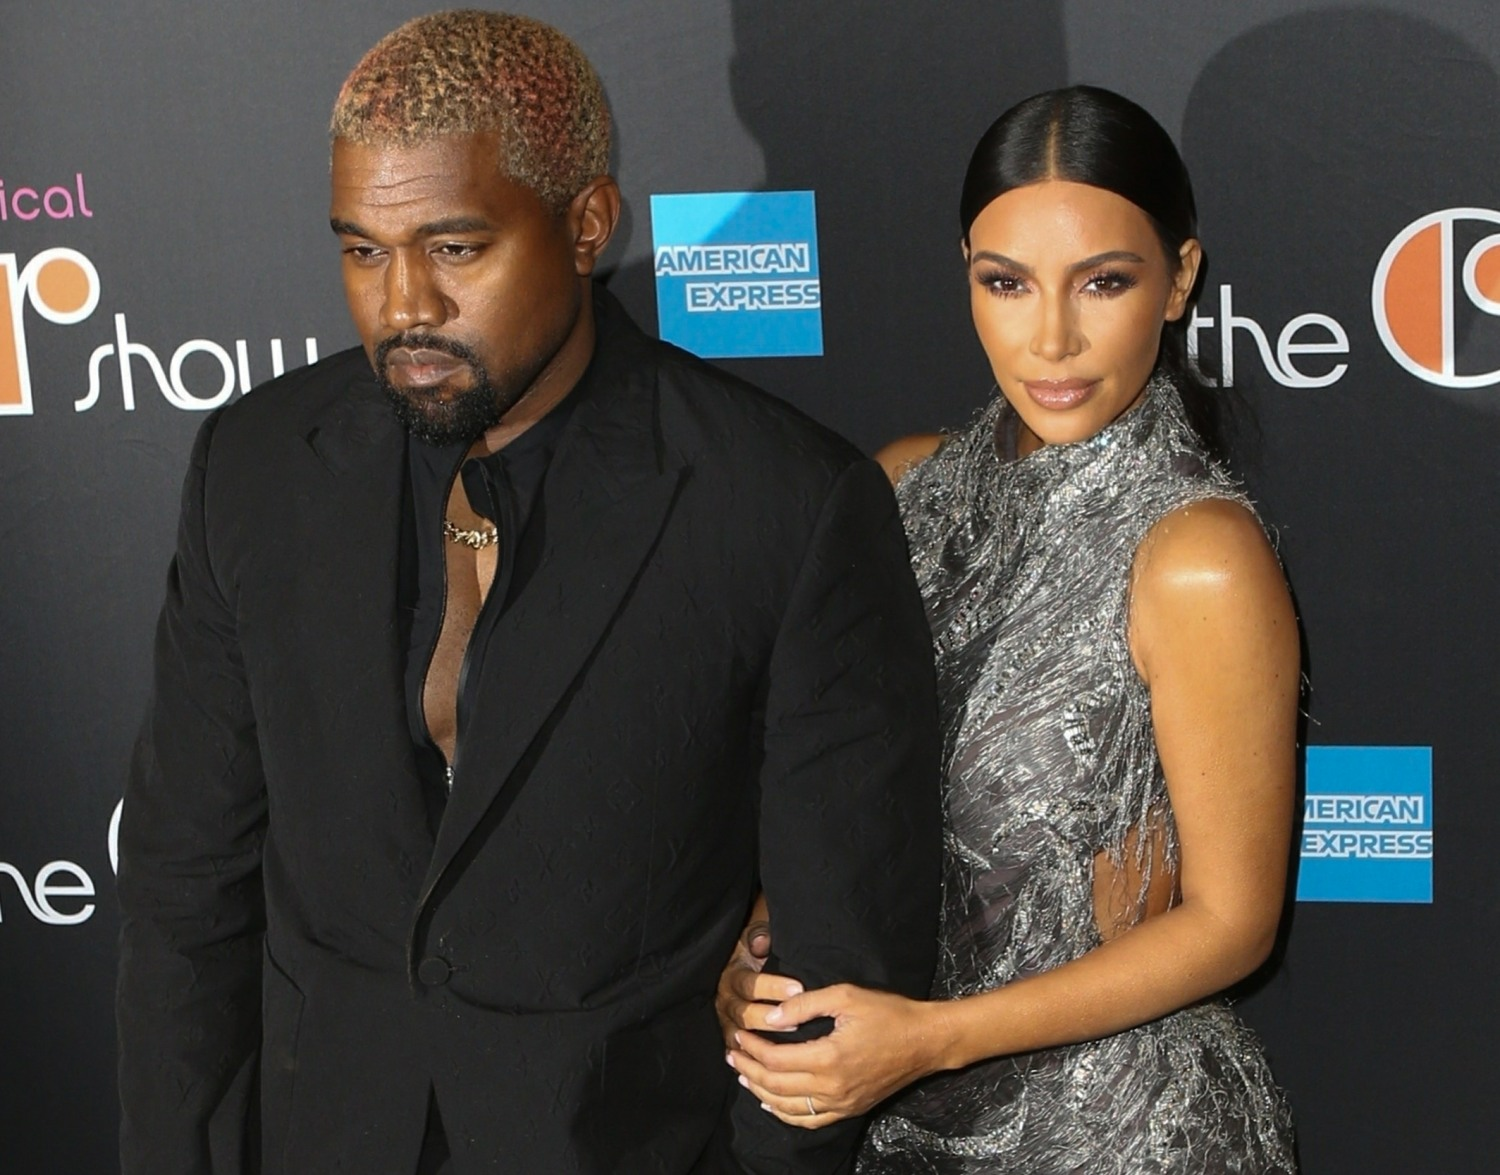 Kim Kardashian and Kanye West arrive on the black carpet at the Cher musical